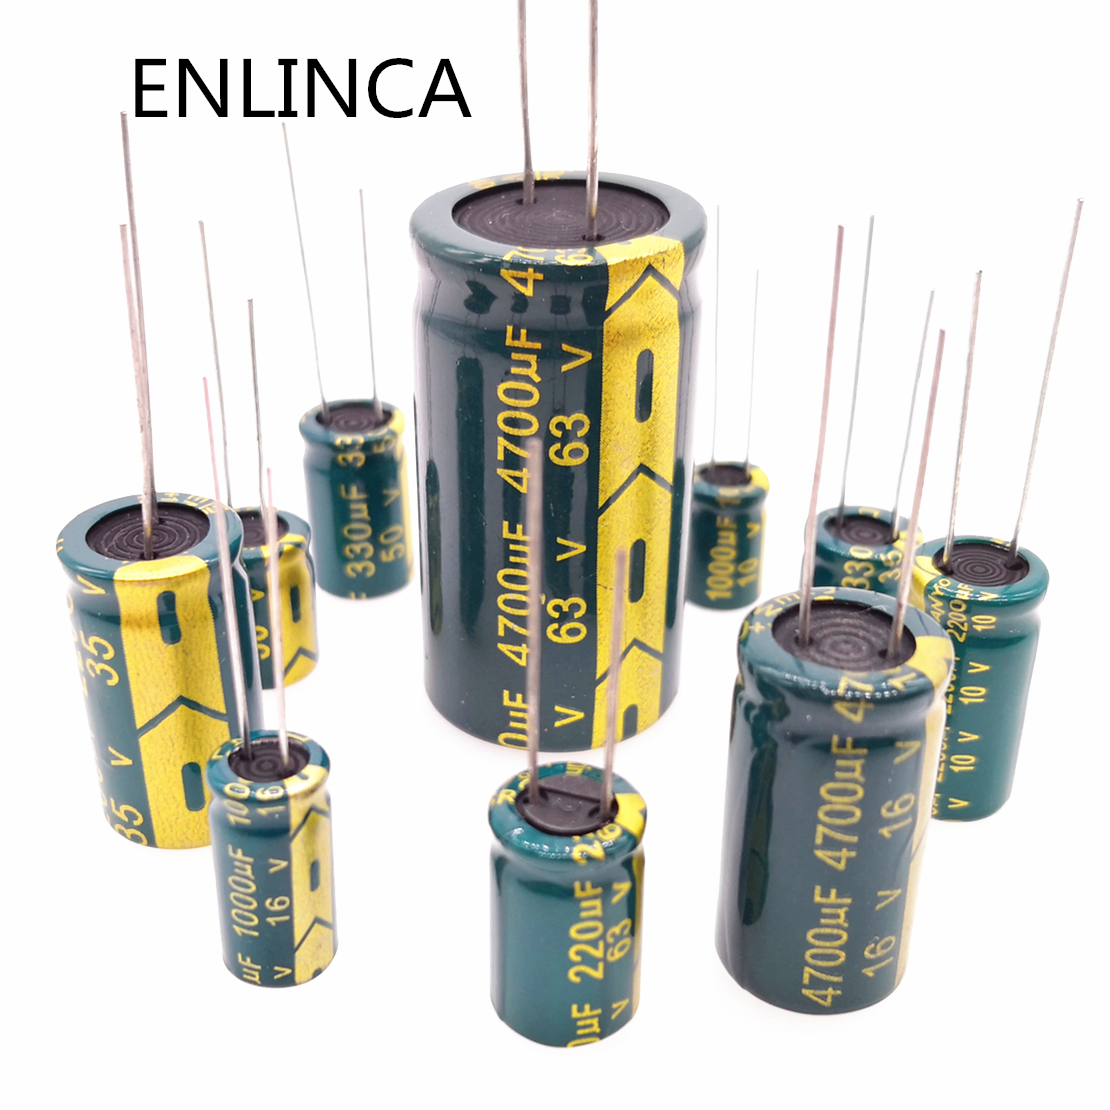 5-20pcs 6.3v 63v 100v 250v 400v 450v Low ESR High Frequency Aluminum Capacitor 47UF 100UF 220UF 330UF 470UF 680UF 1000UF 1500UF